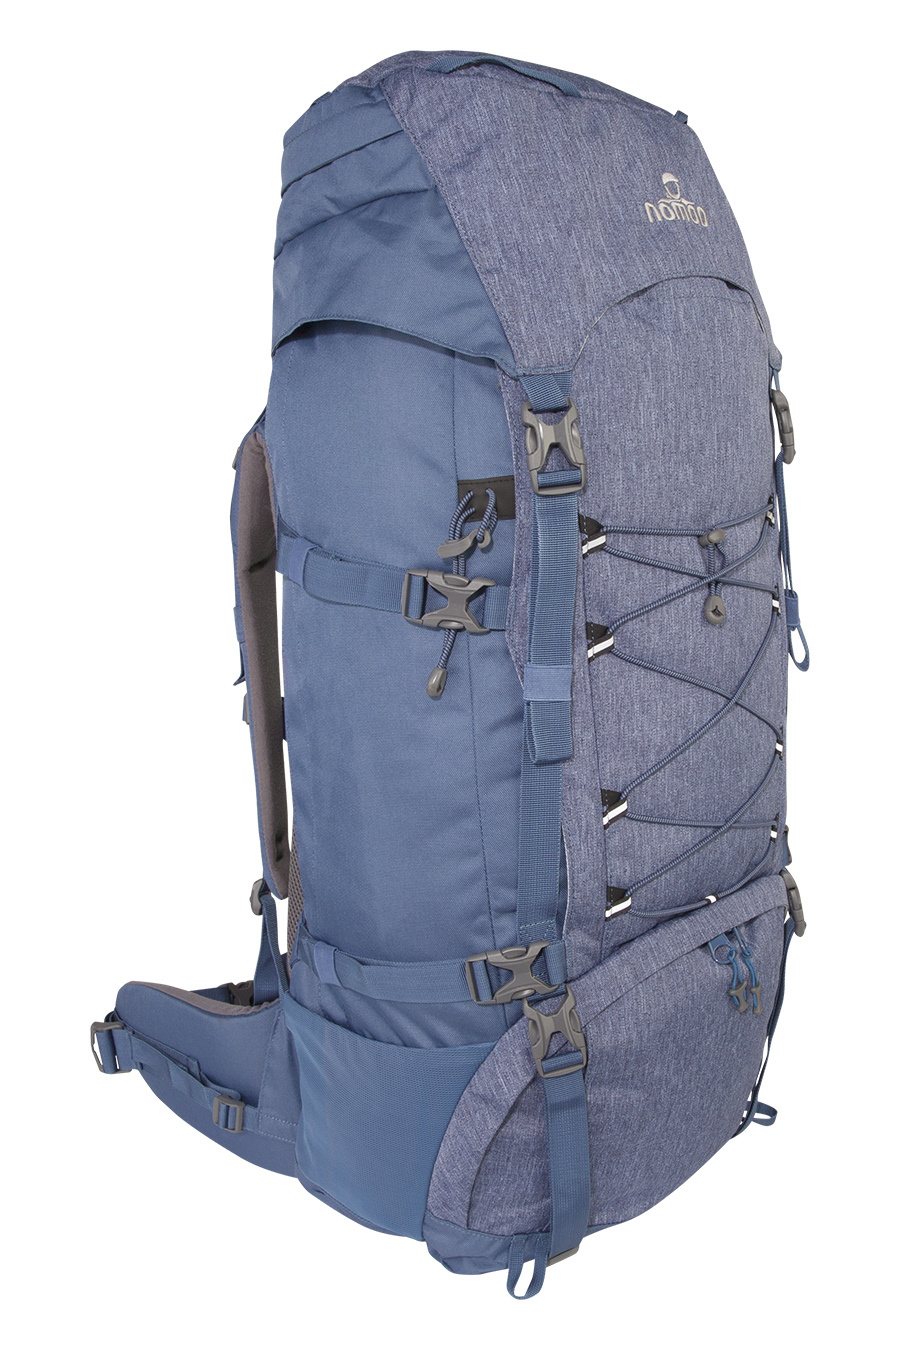 Nomad Karoo SF 65l backpack dames - Steel